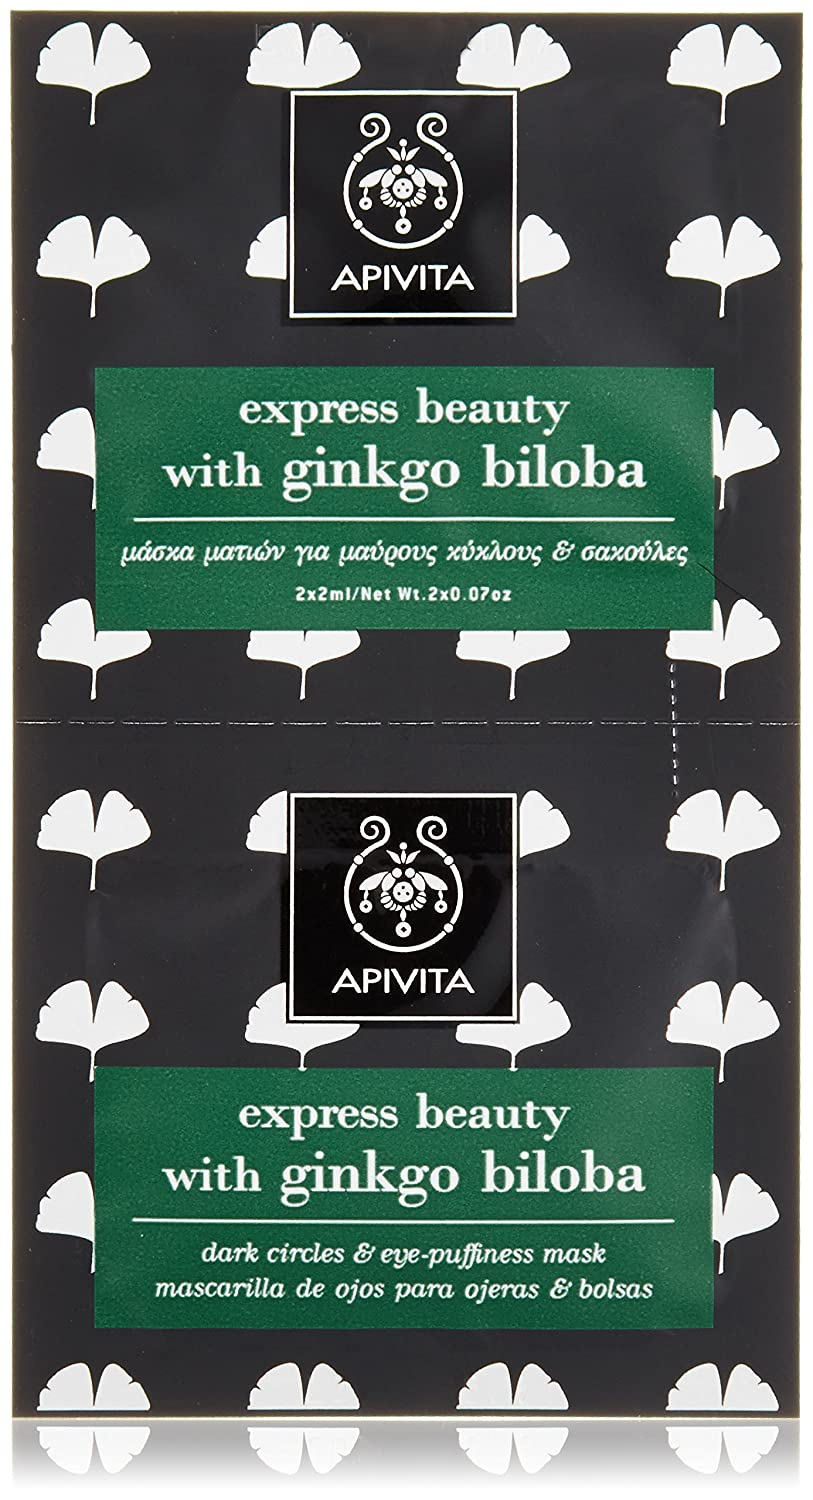 Apivita express beauty eyes mask for Dark Cicles ,Tired & Puffy Eyes with ginkgo biloba 2x2ml